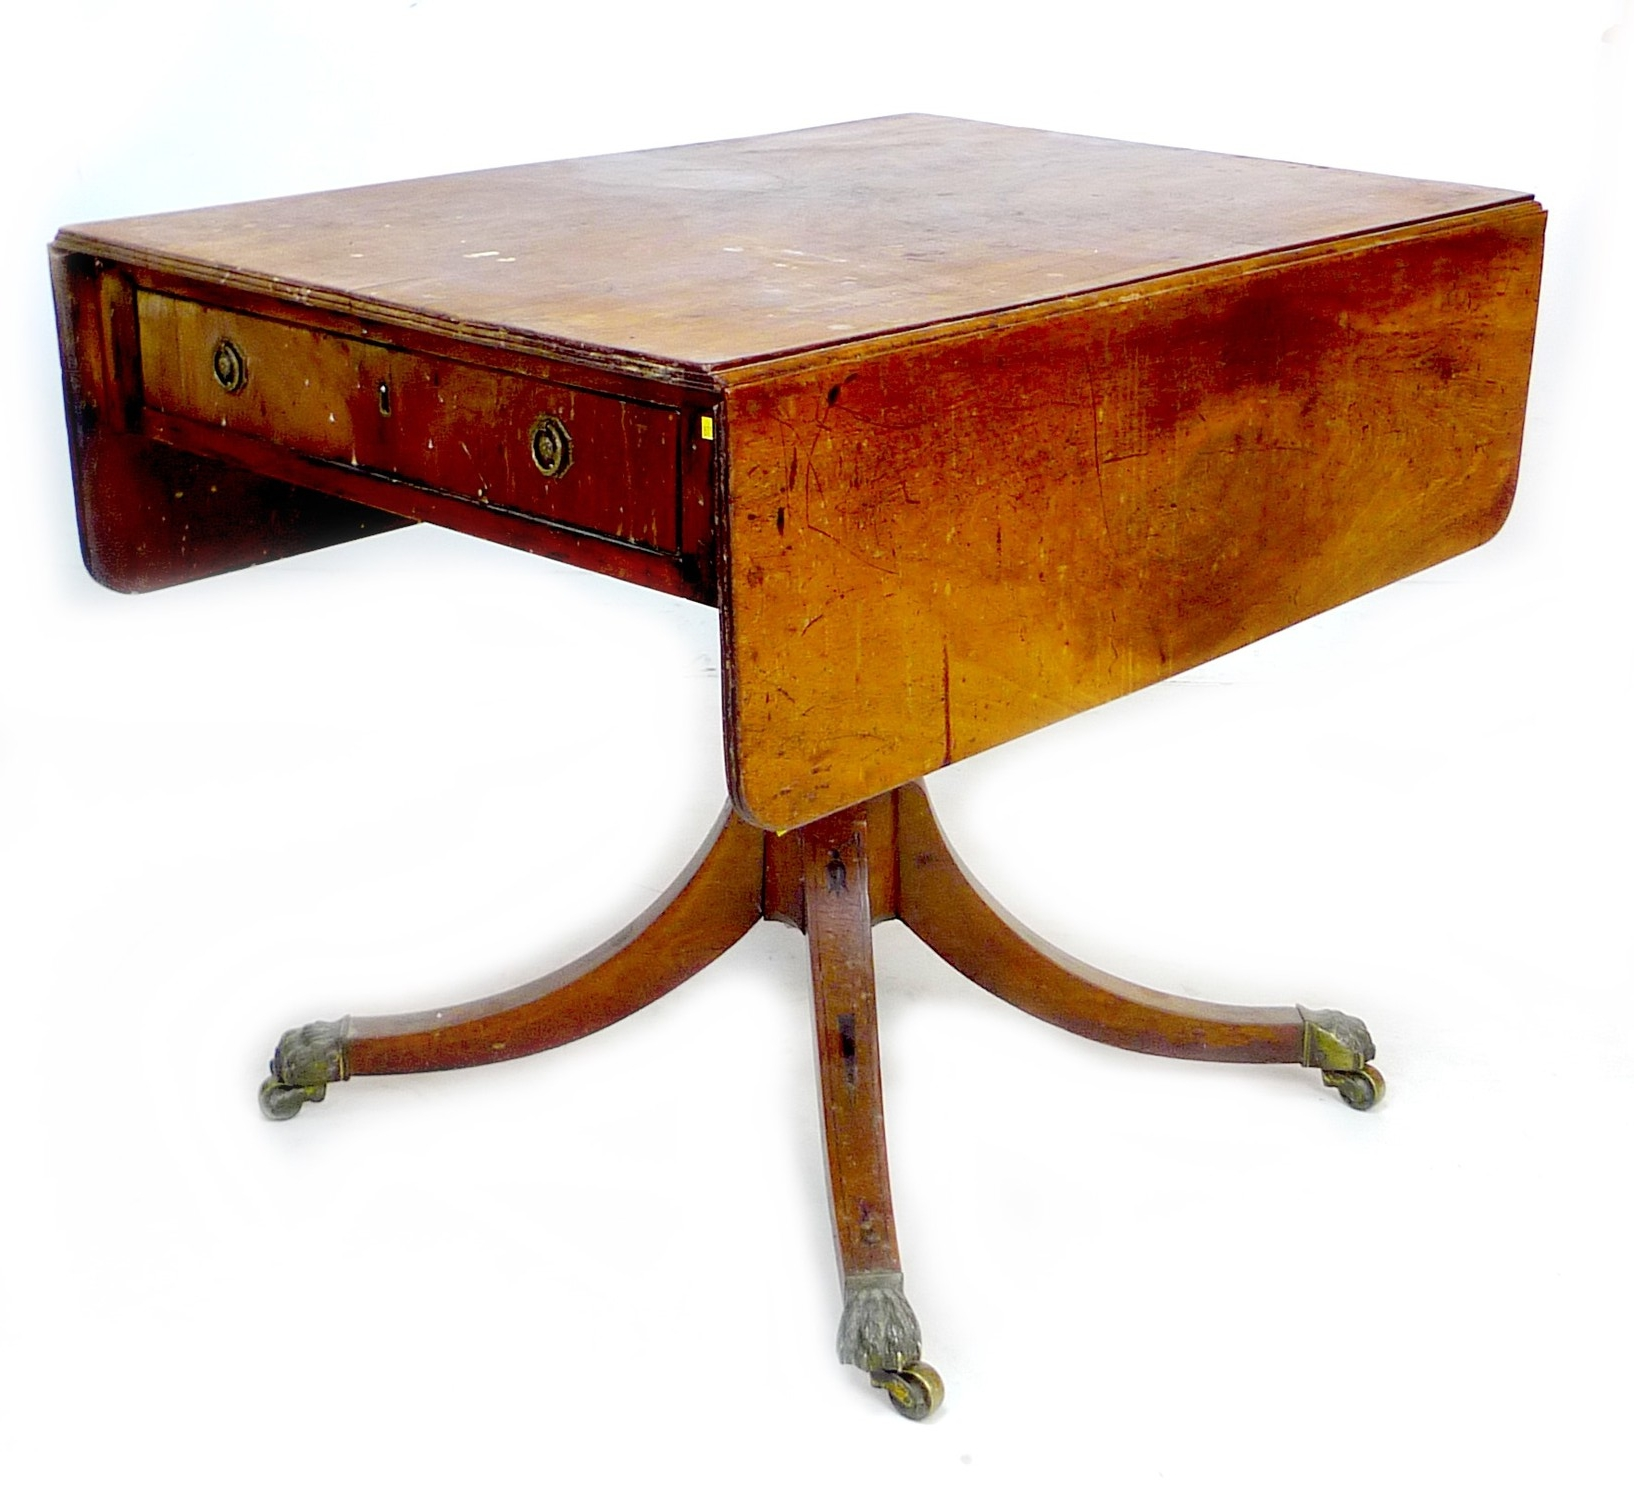 A Regency mahogany sofa table, with single frieze drawer, raised on four outswept legs with brass